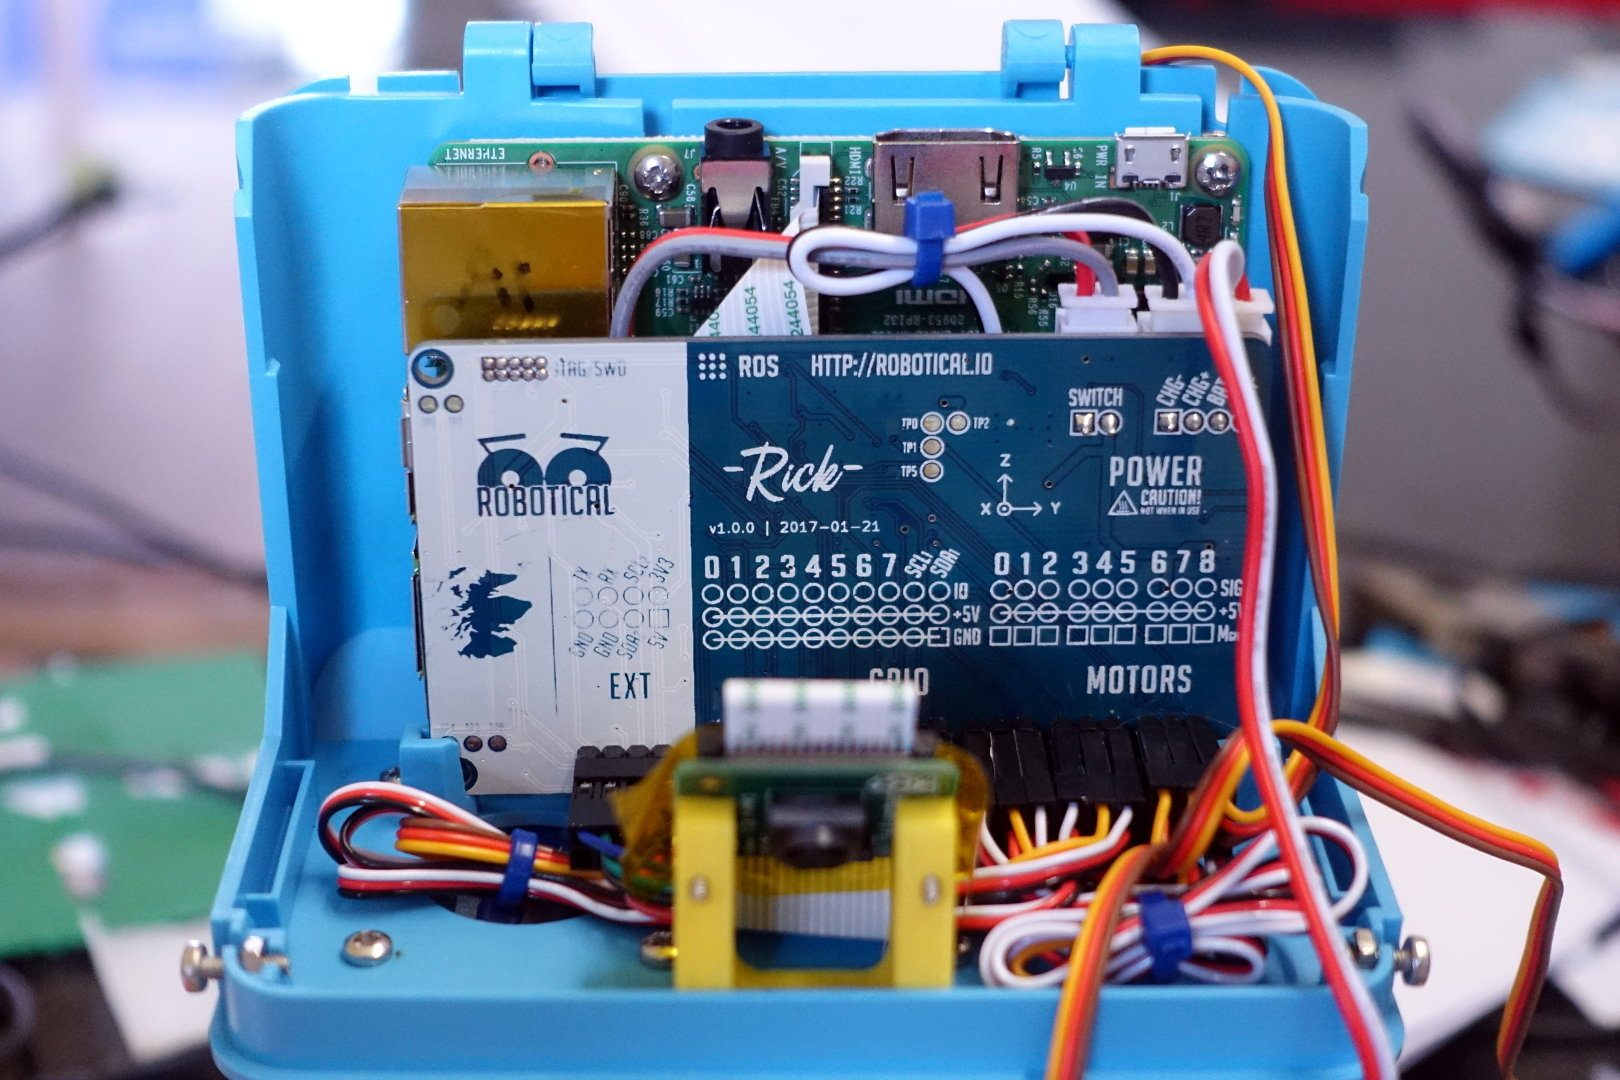 Inside Marty's head, showing a mounted Raspberry Pi